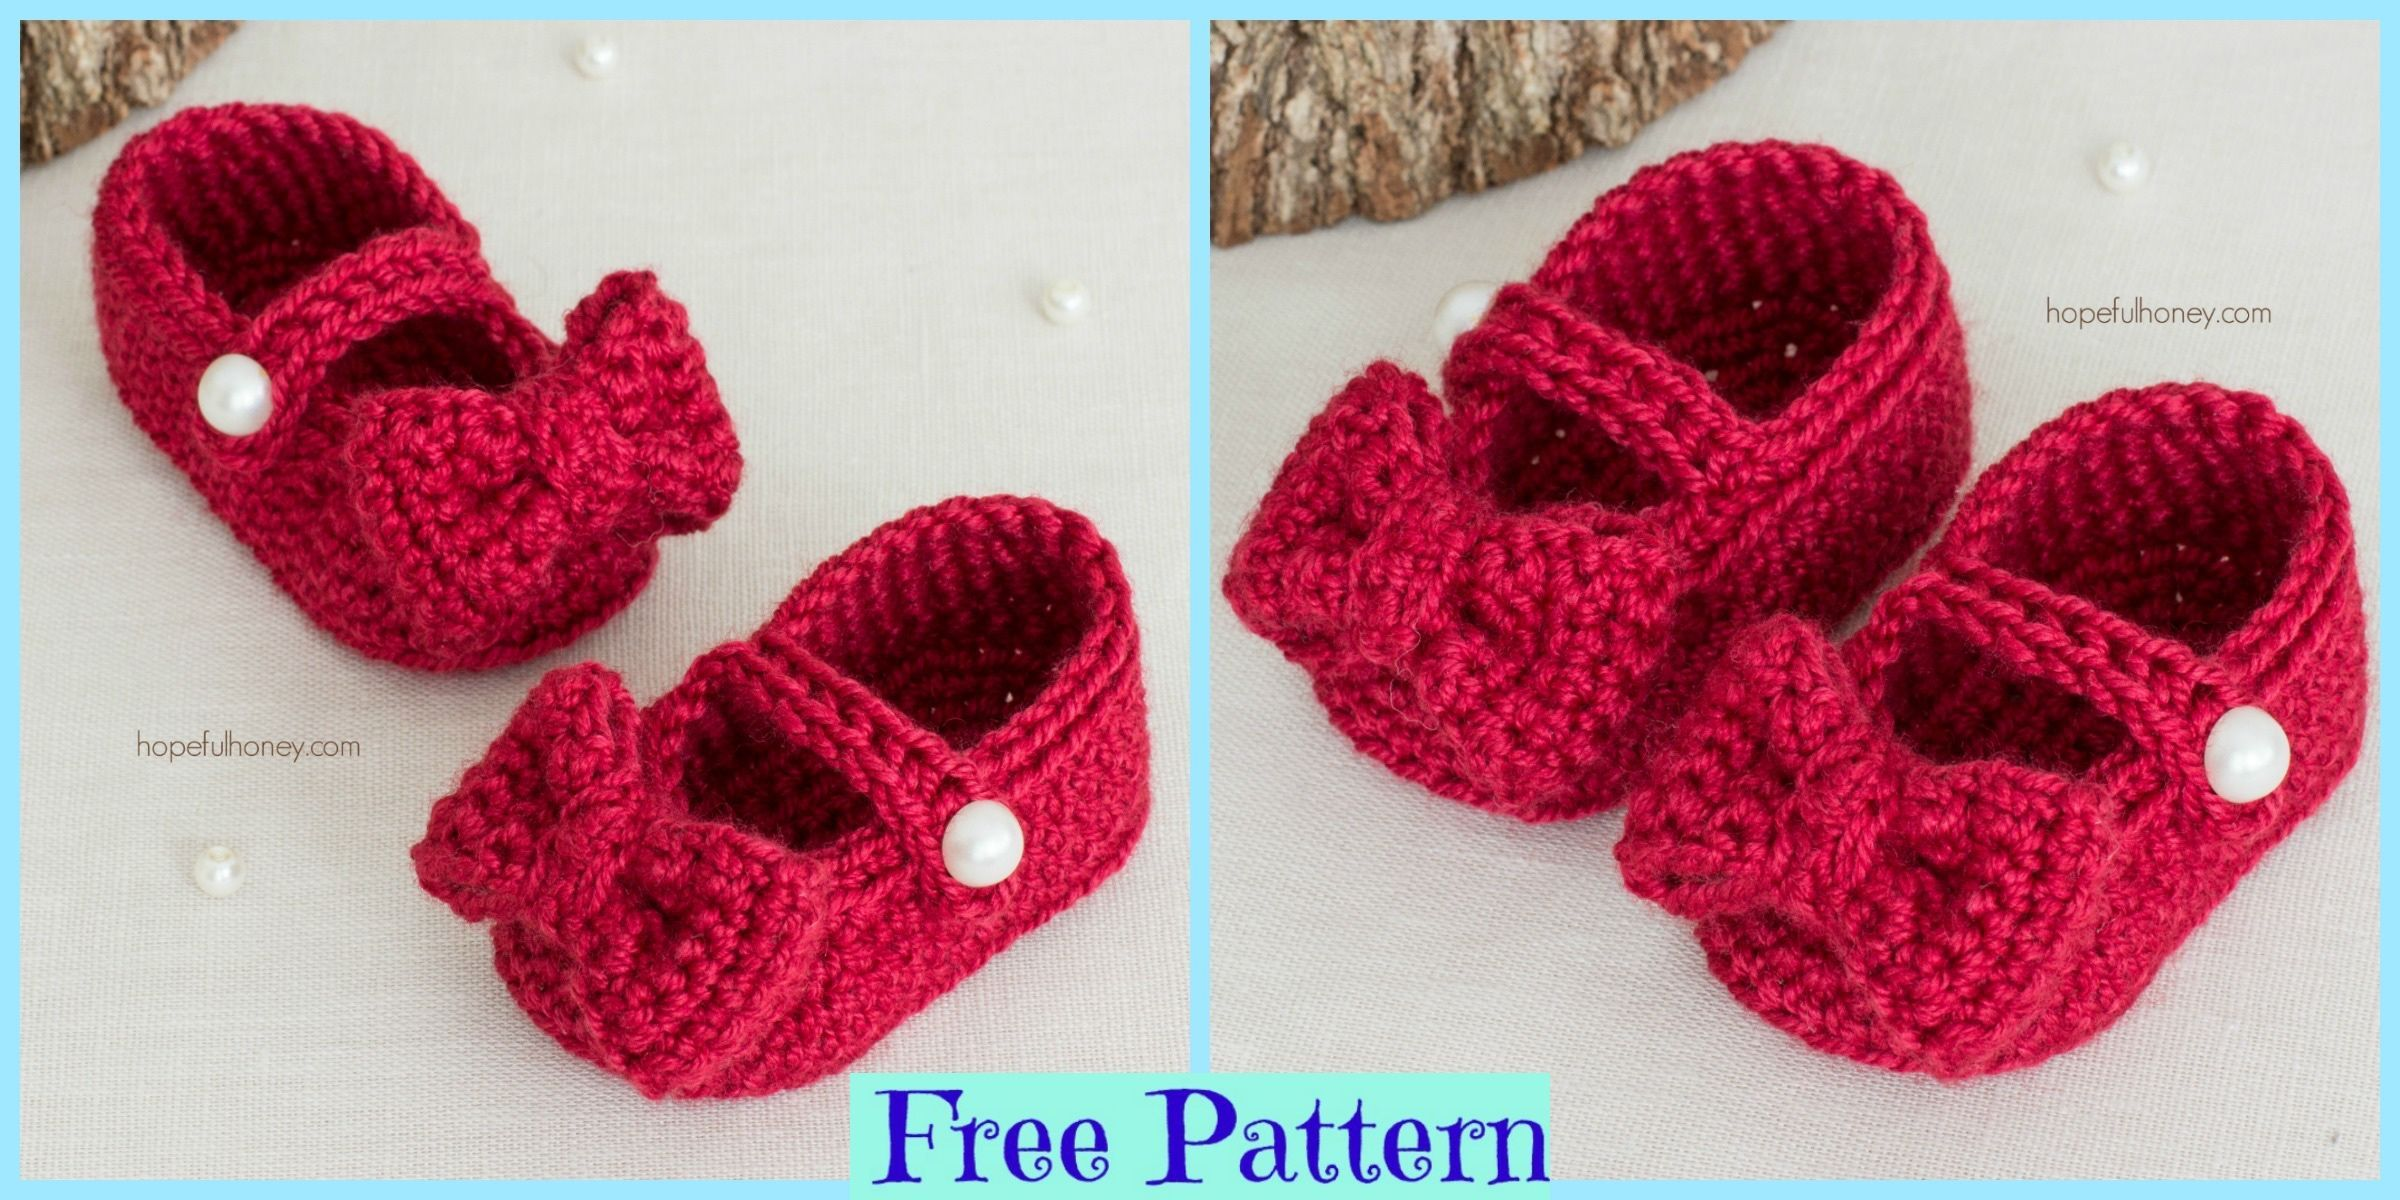 Red Crochet Mary Jane Booties - Free Pattern #dogcrochetedsweaters Red Crochet Mary Jane Booties – Free Pattern #dogcrochetedsweaters